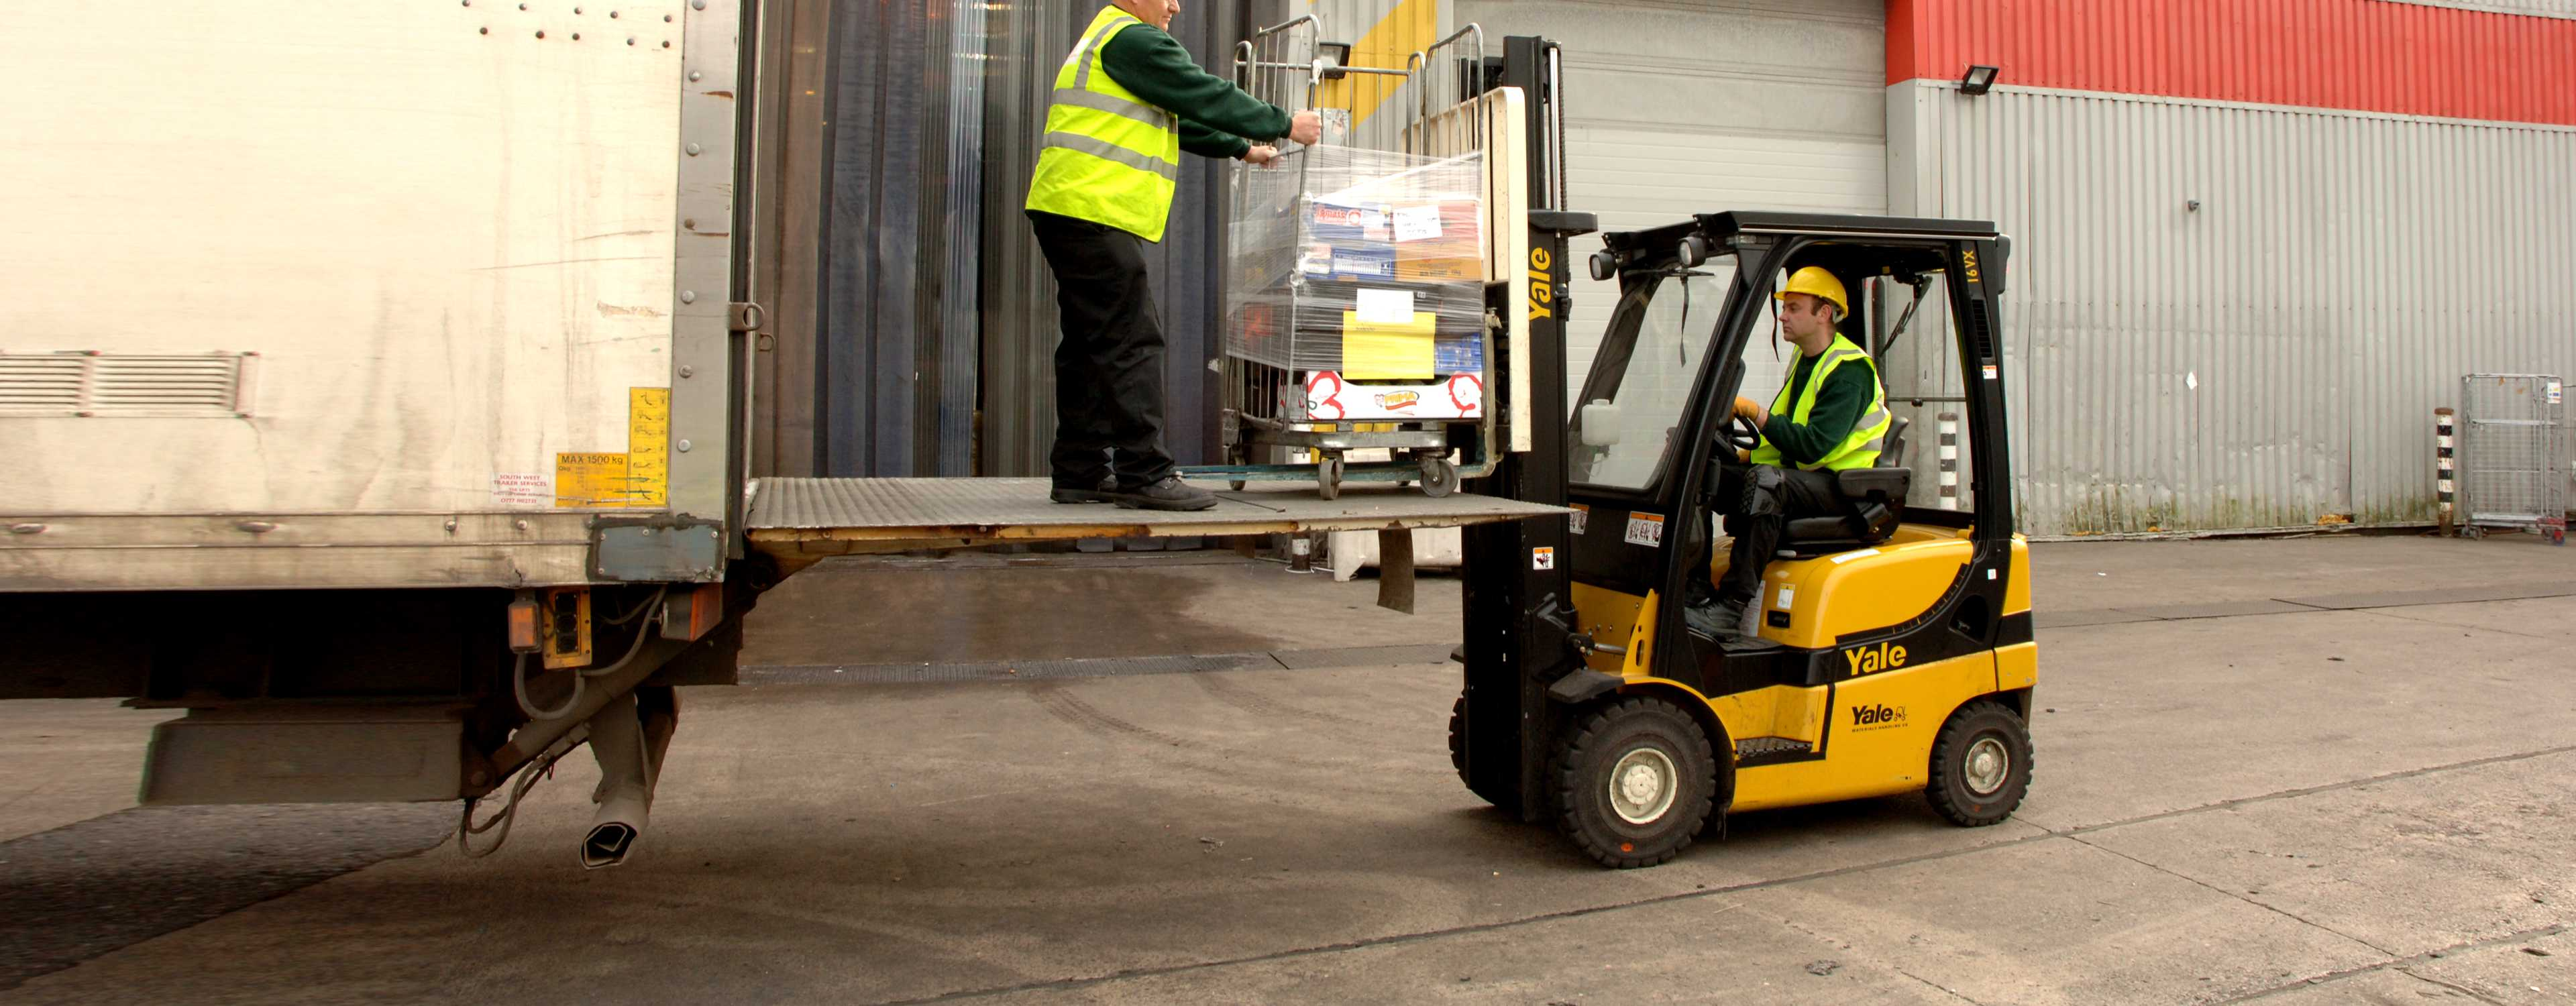 townsville forklift servicing